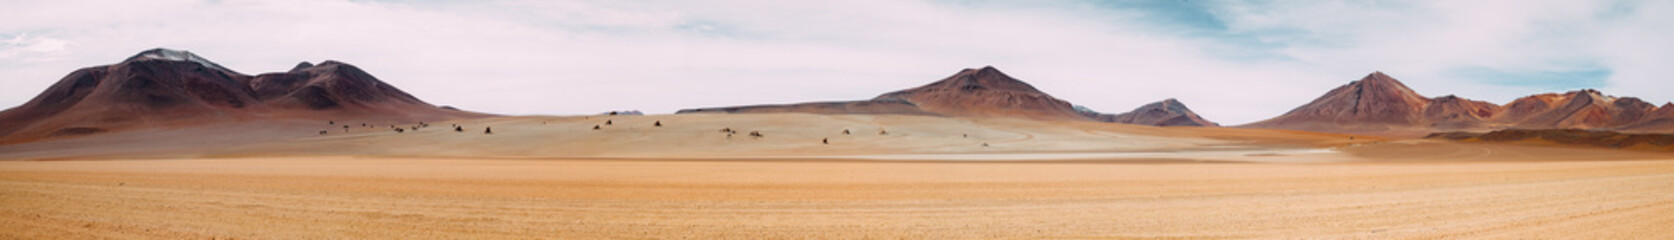 Photo sur Plexiglas Secheresse The vast expanse of nothingness - Atacama Desert - Bolivia